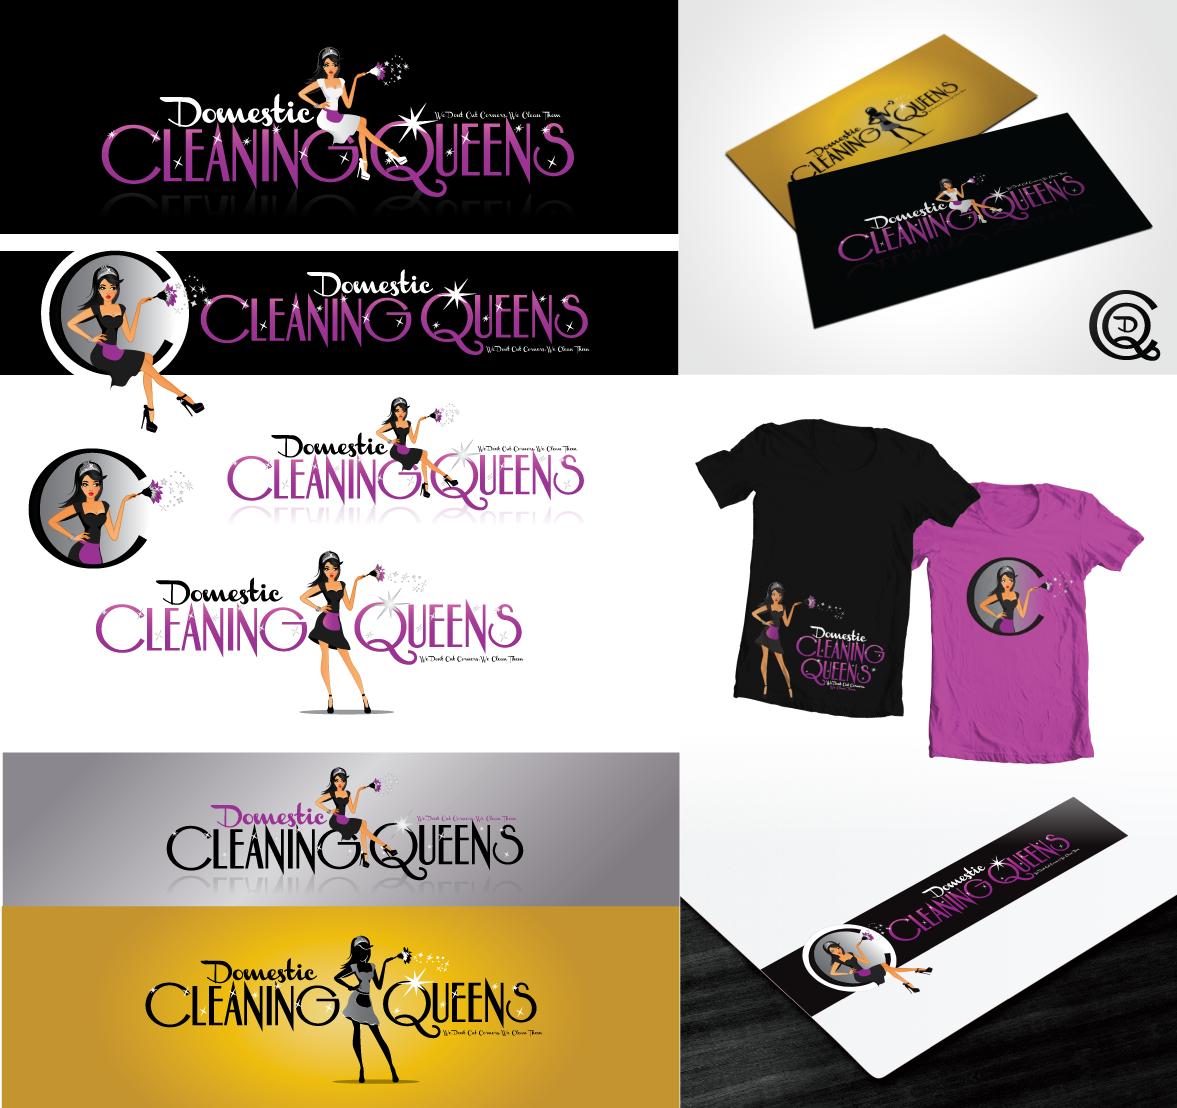 Create a CLASSIC logo for 'Domestic Cleaning Queens'